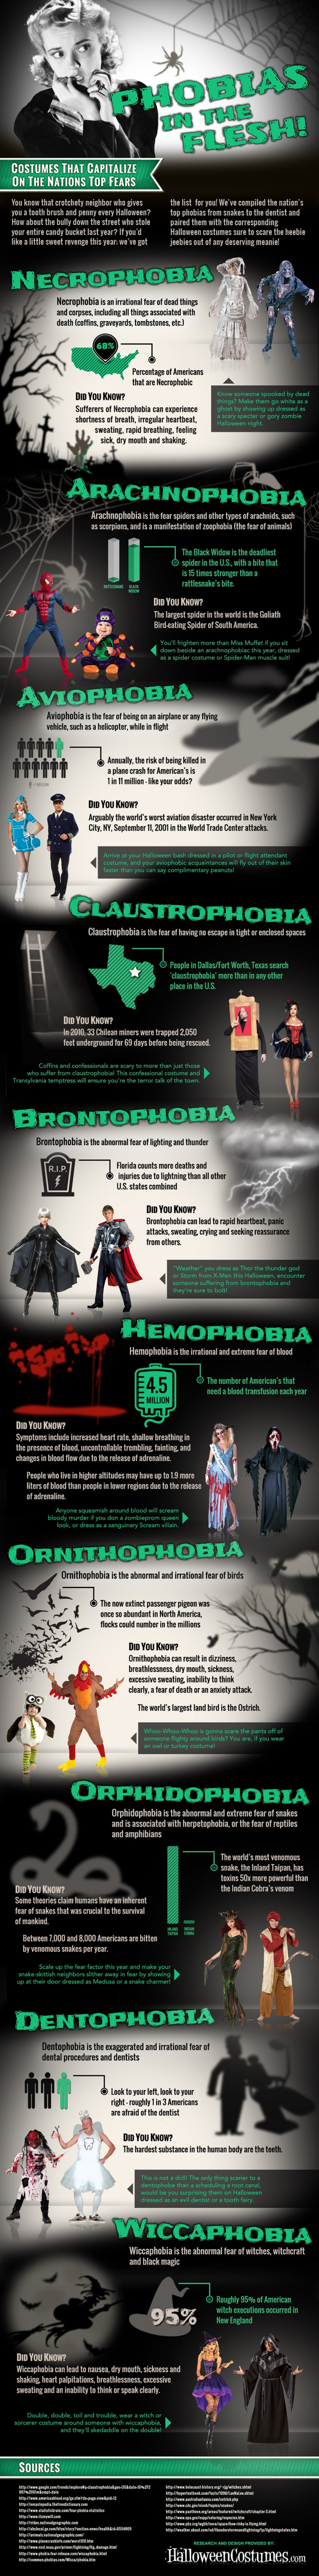 Phobias in the Flesh: Costumes that Capitalize on the Nation's Top Fears Infographic